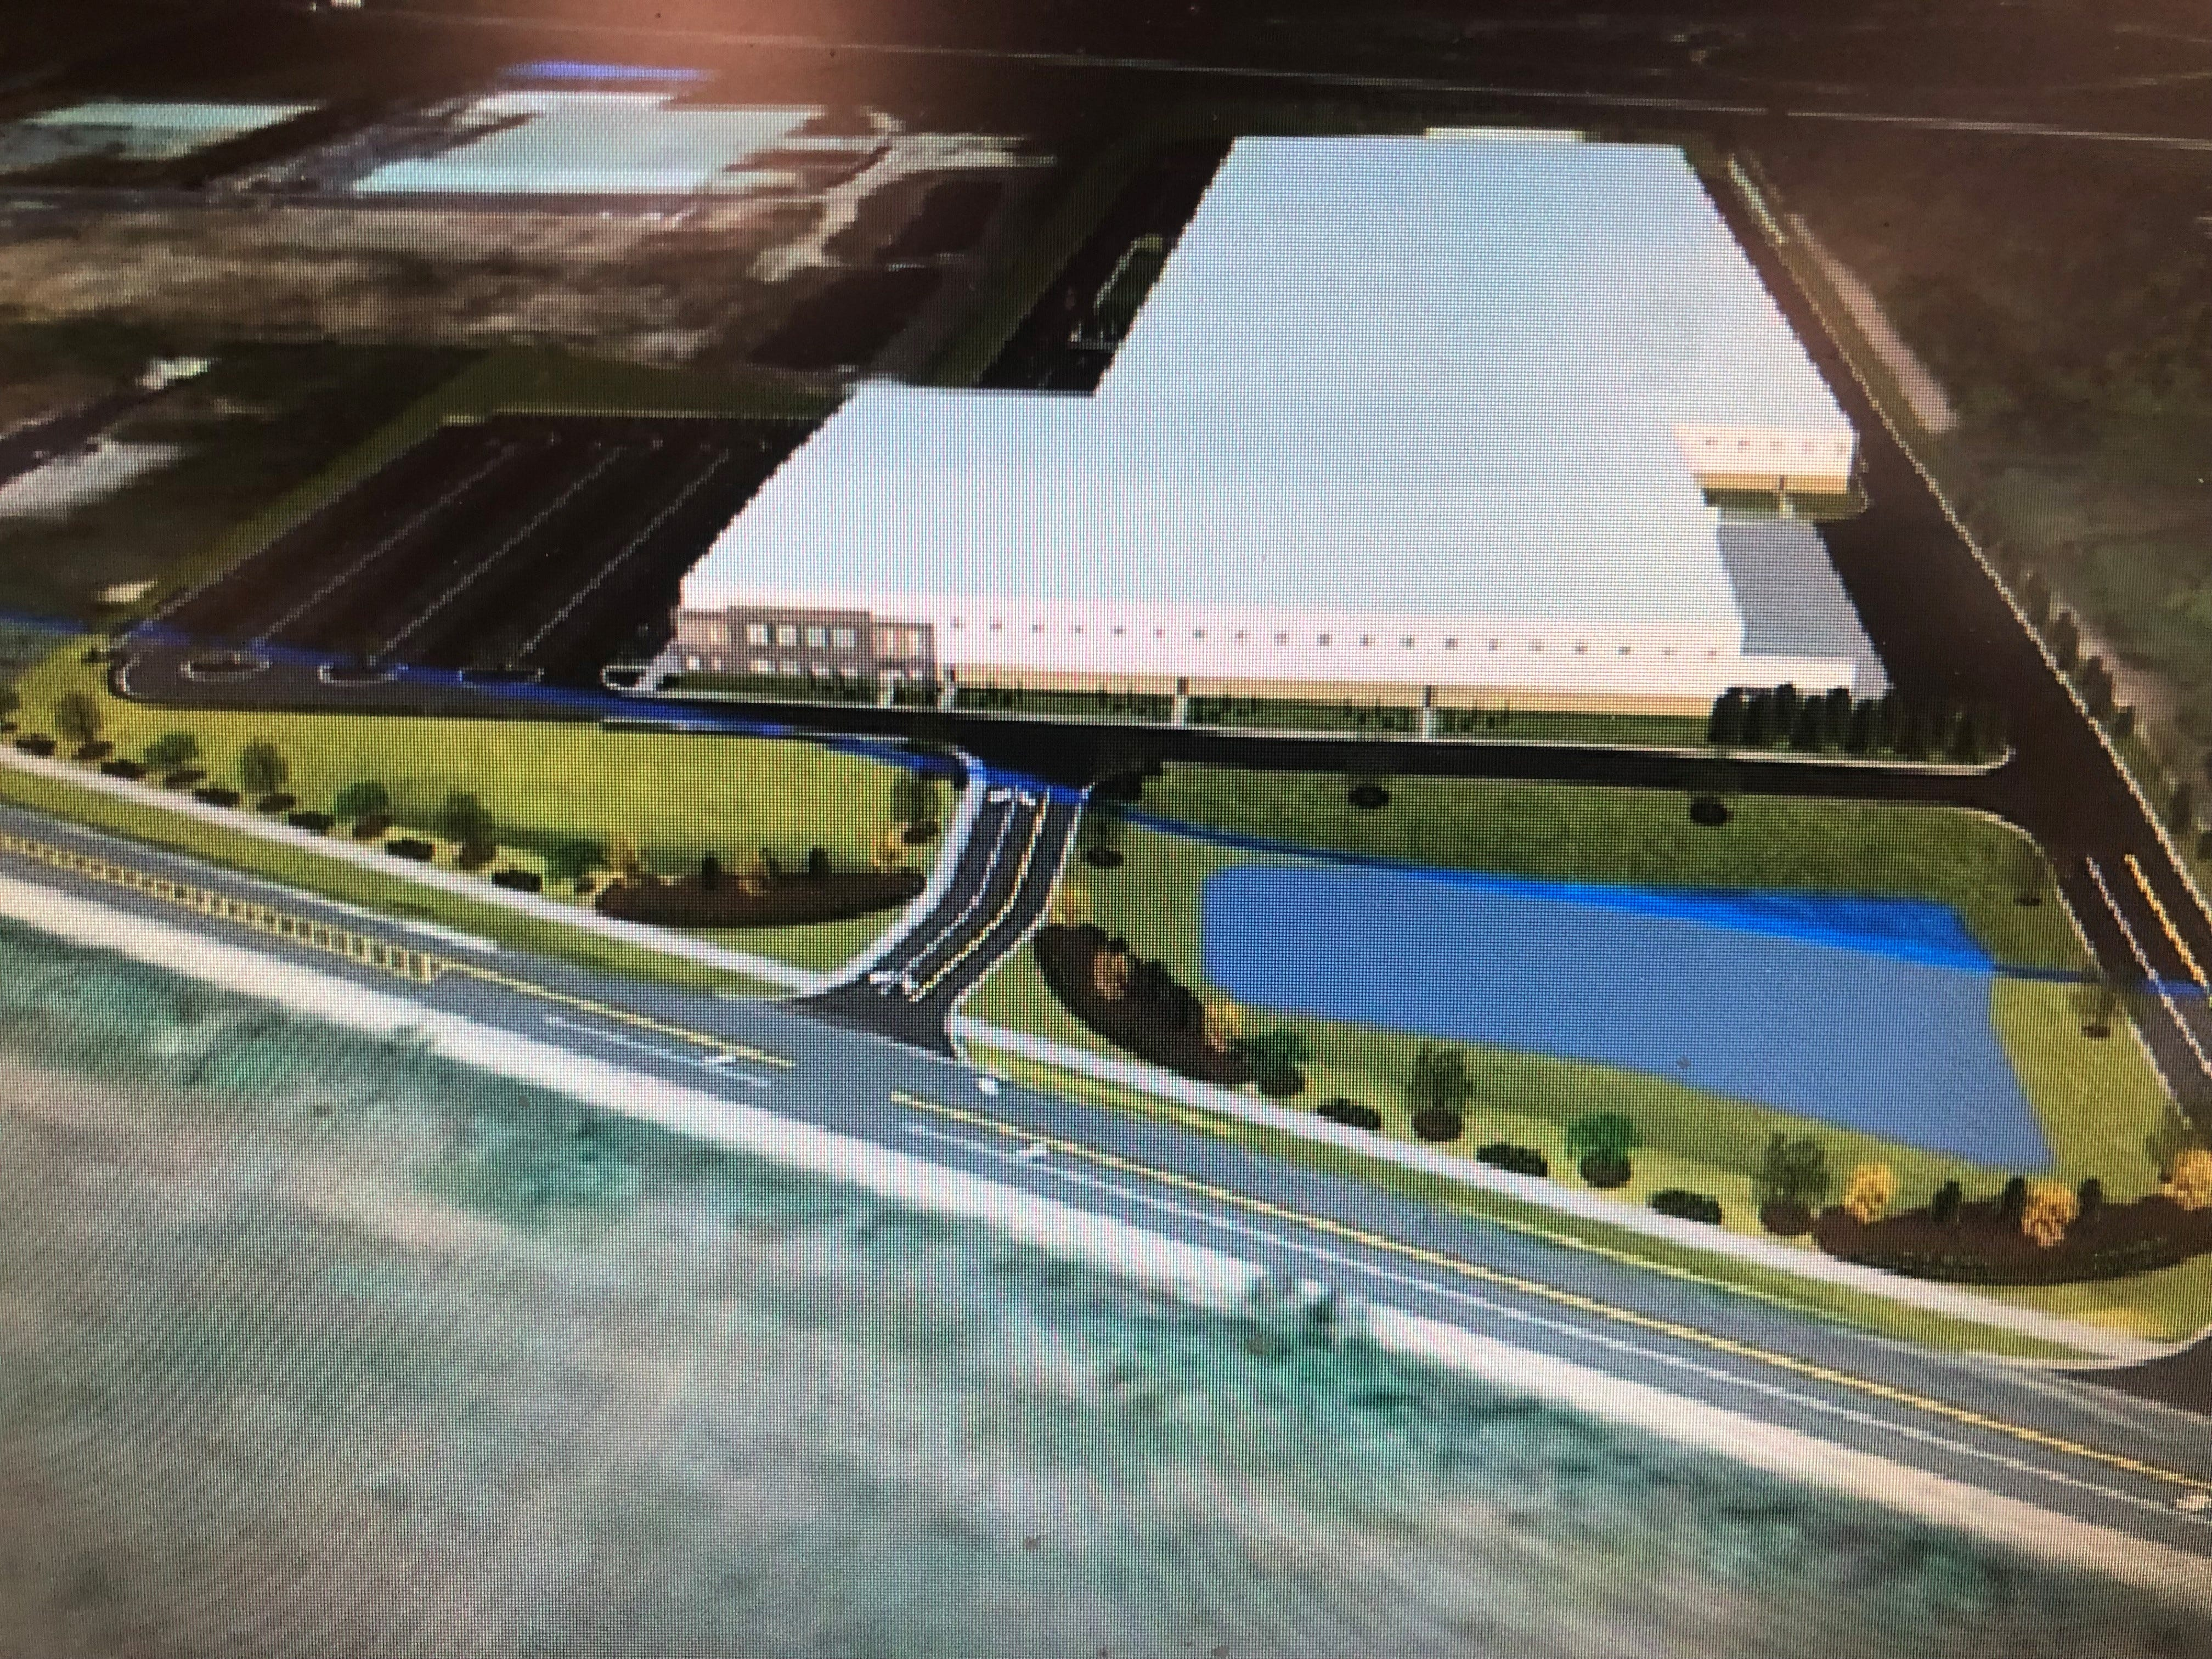 HANS Water and Power plans 500,000-square-foot assembly